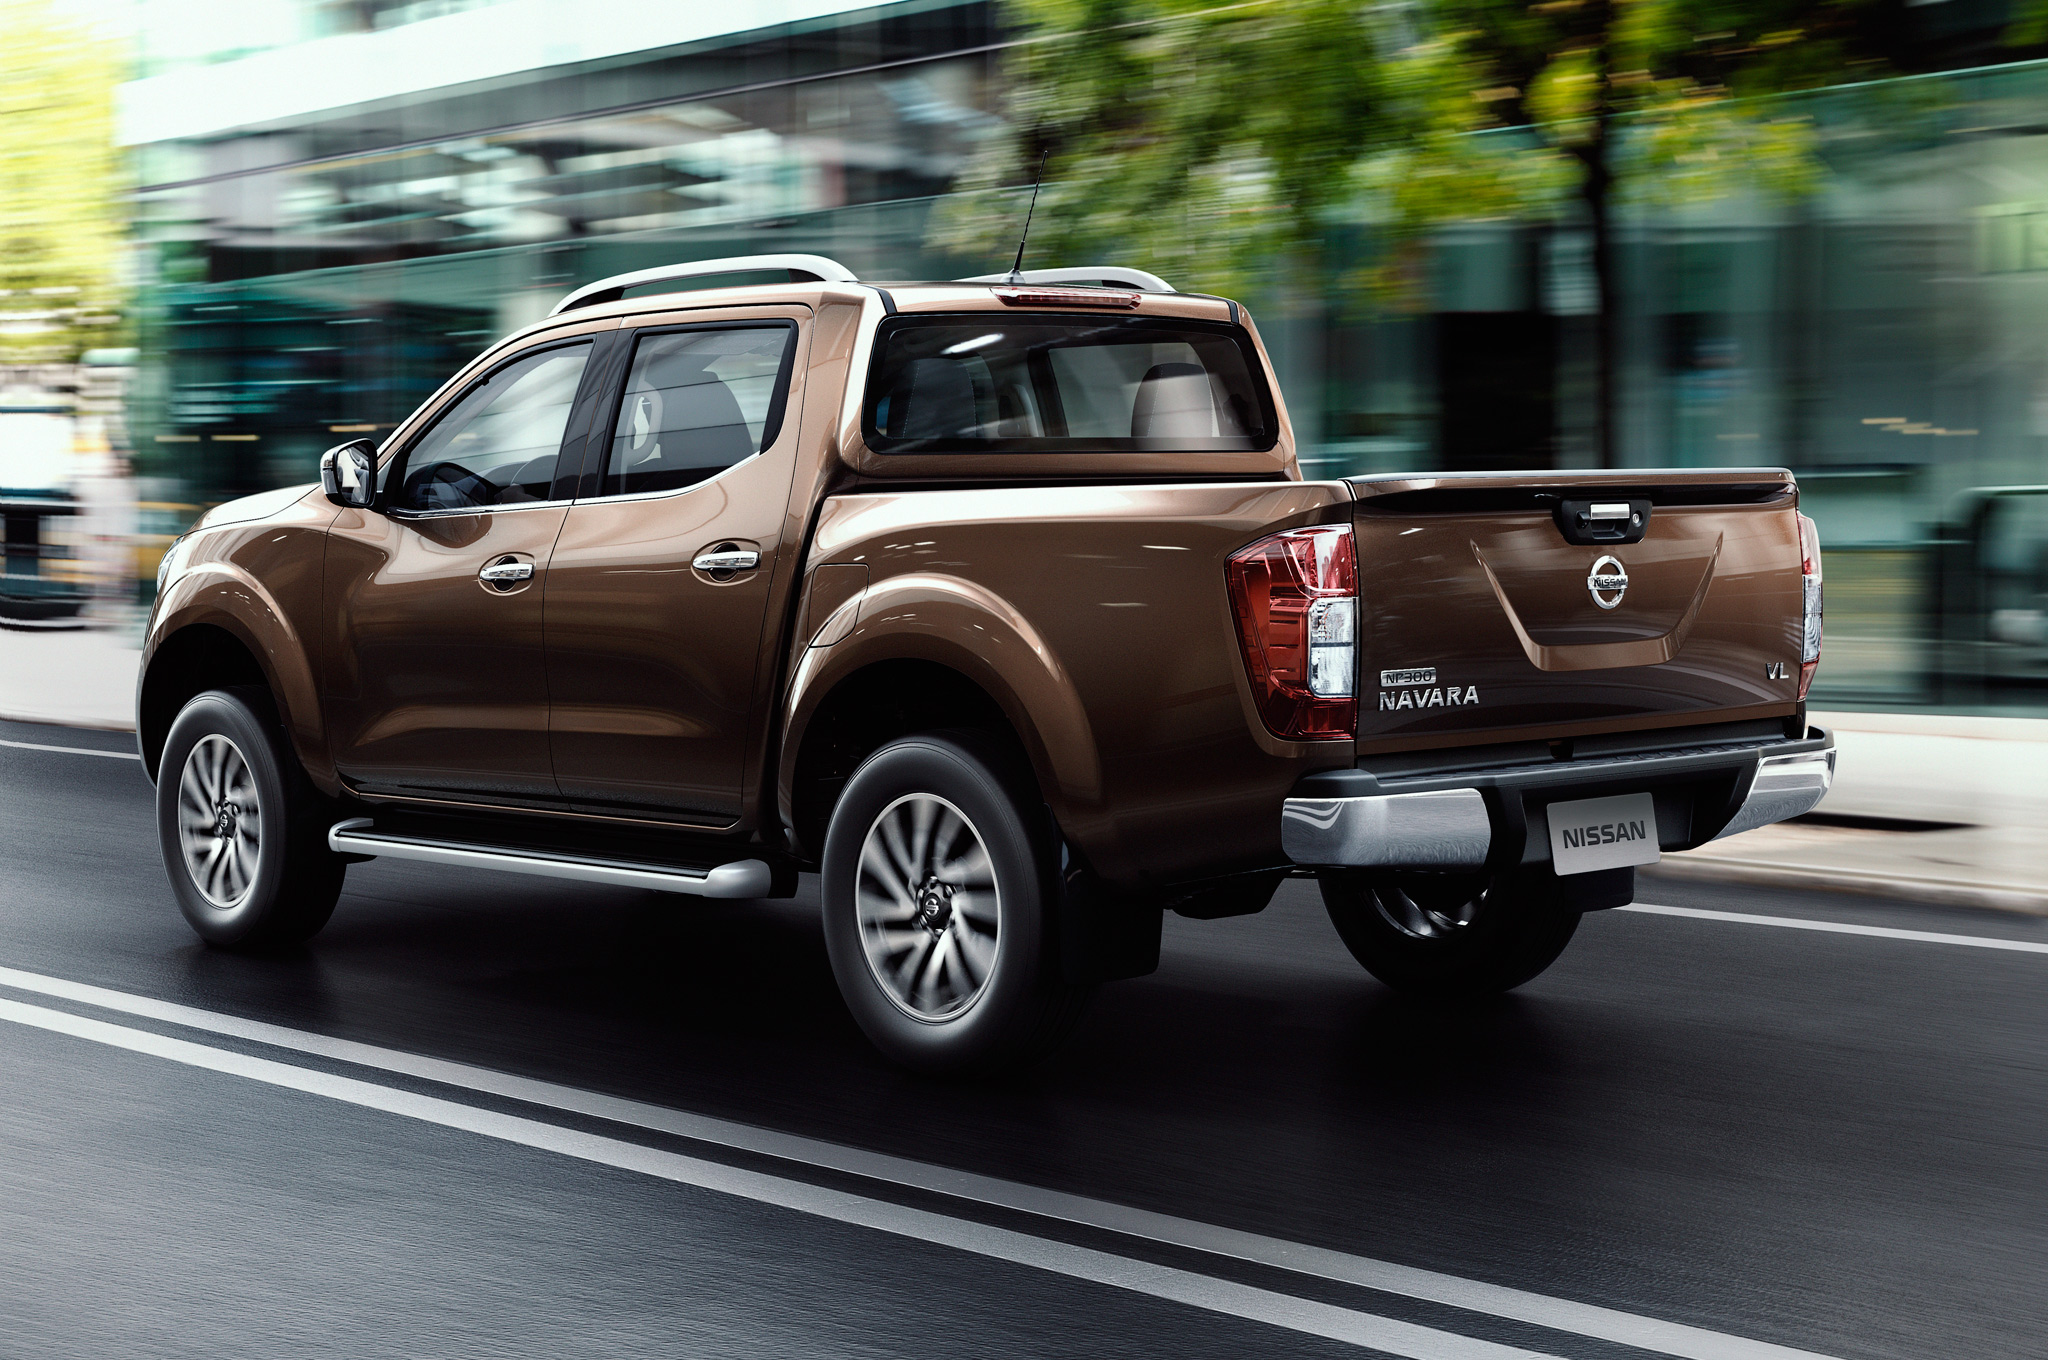 2015 All New Nissan Np300 Navara Rear Side Preview (Photo 6 of 6)